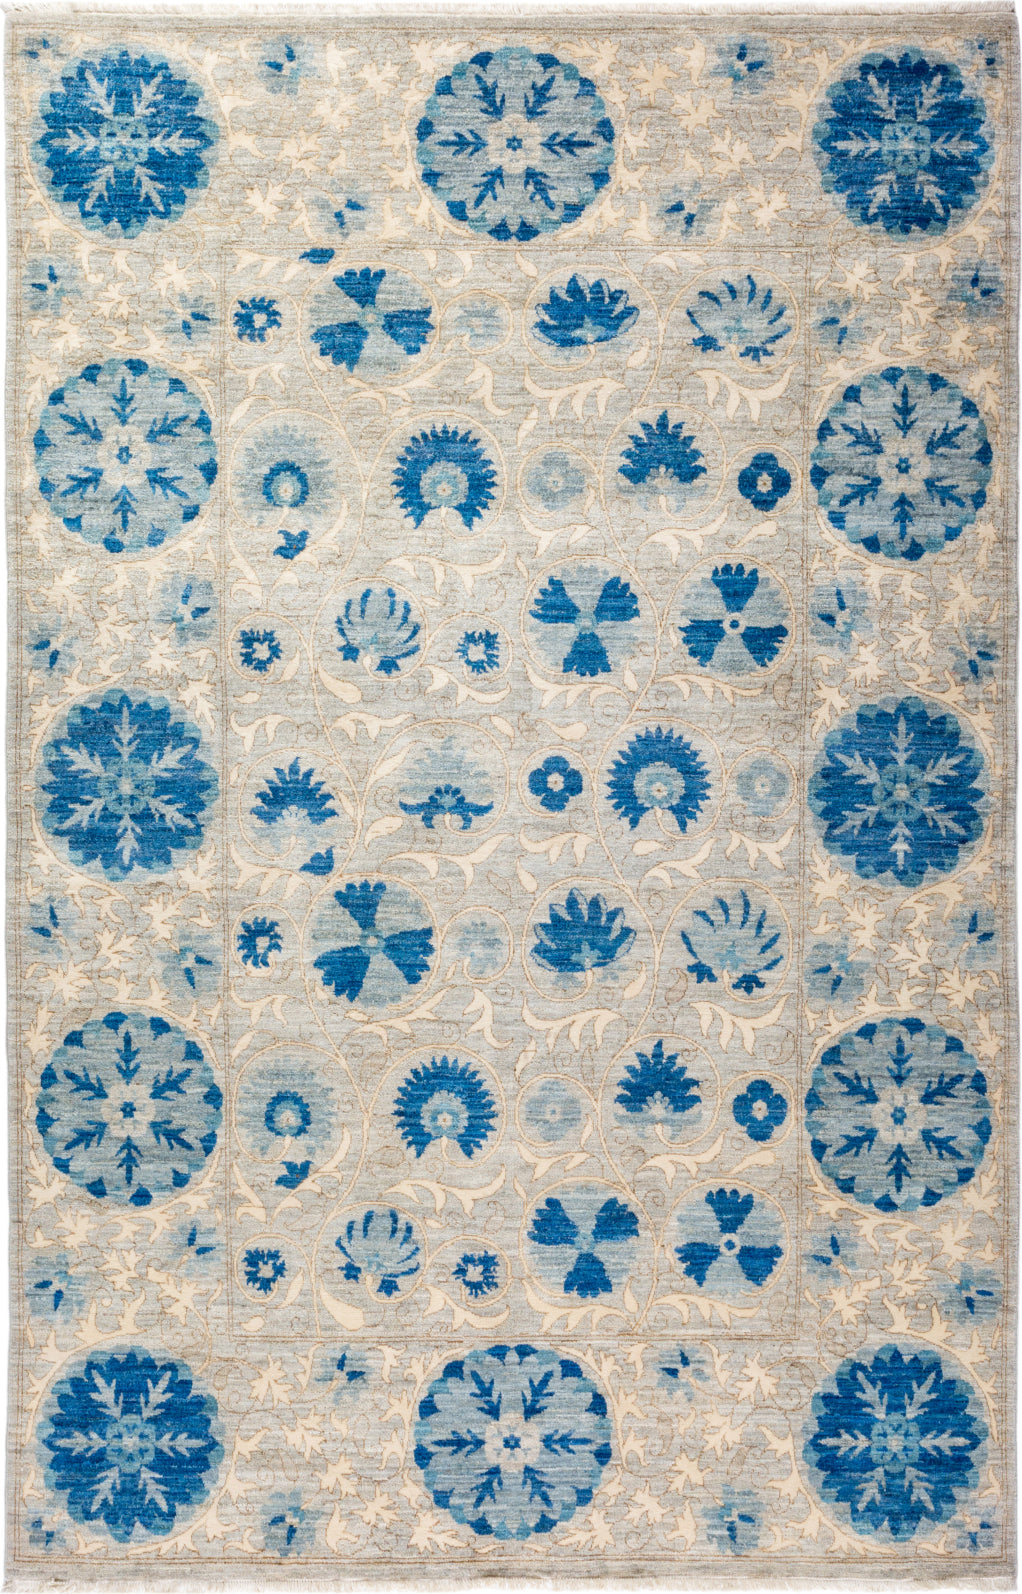 Solo Rugs Floral M1910-653 Light Blue Area Rug main image